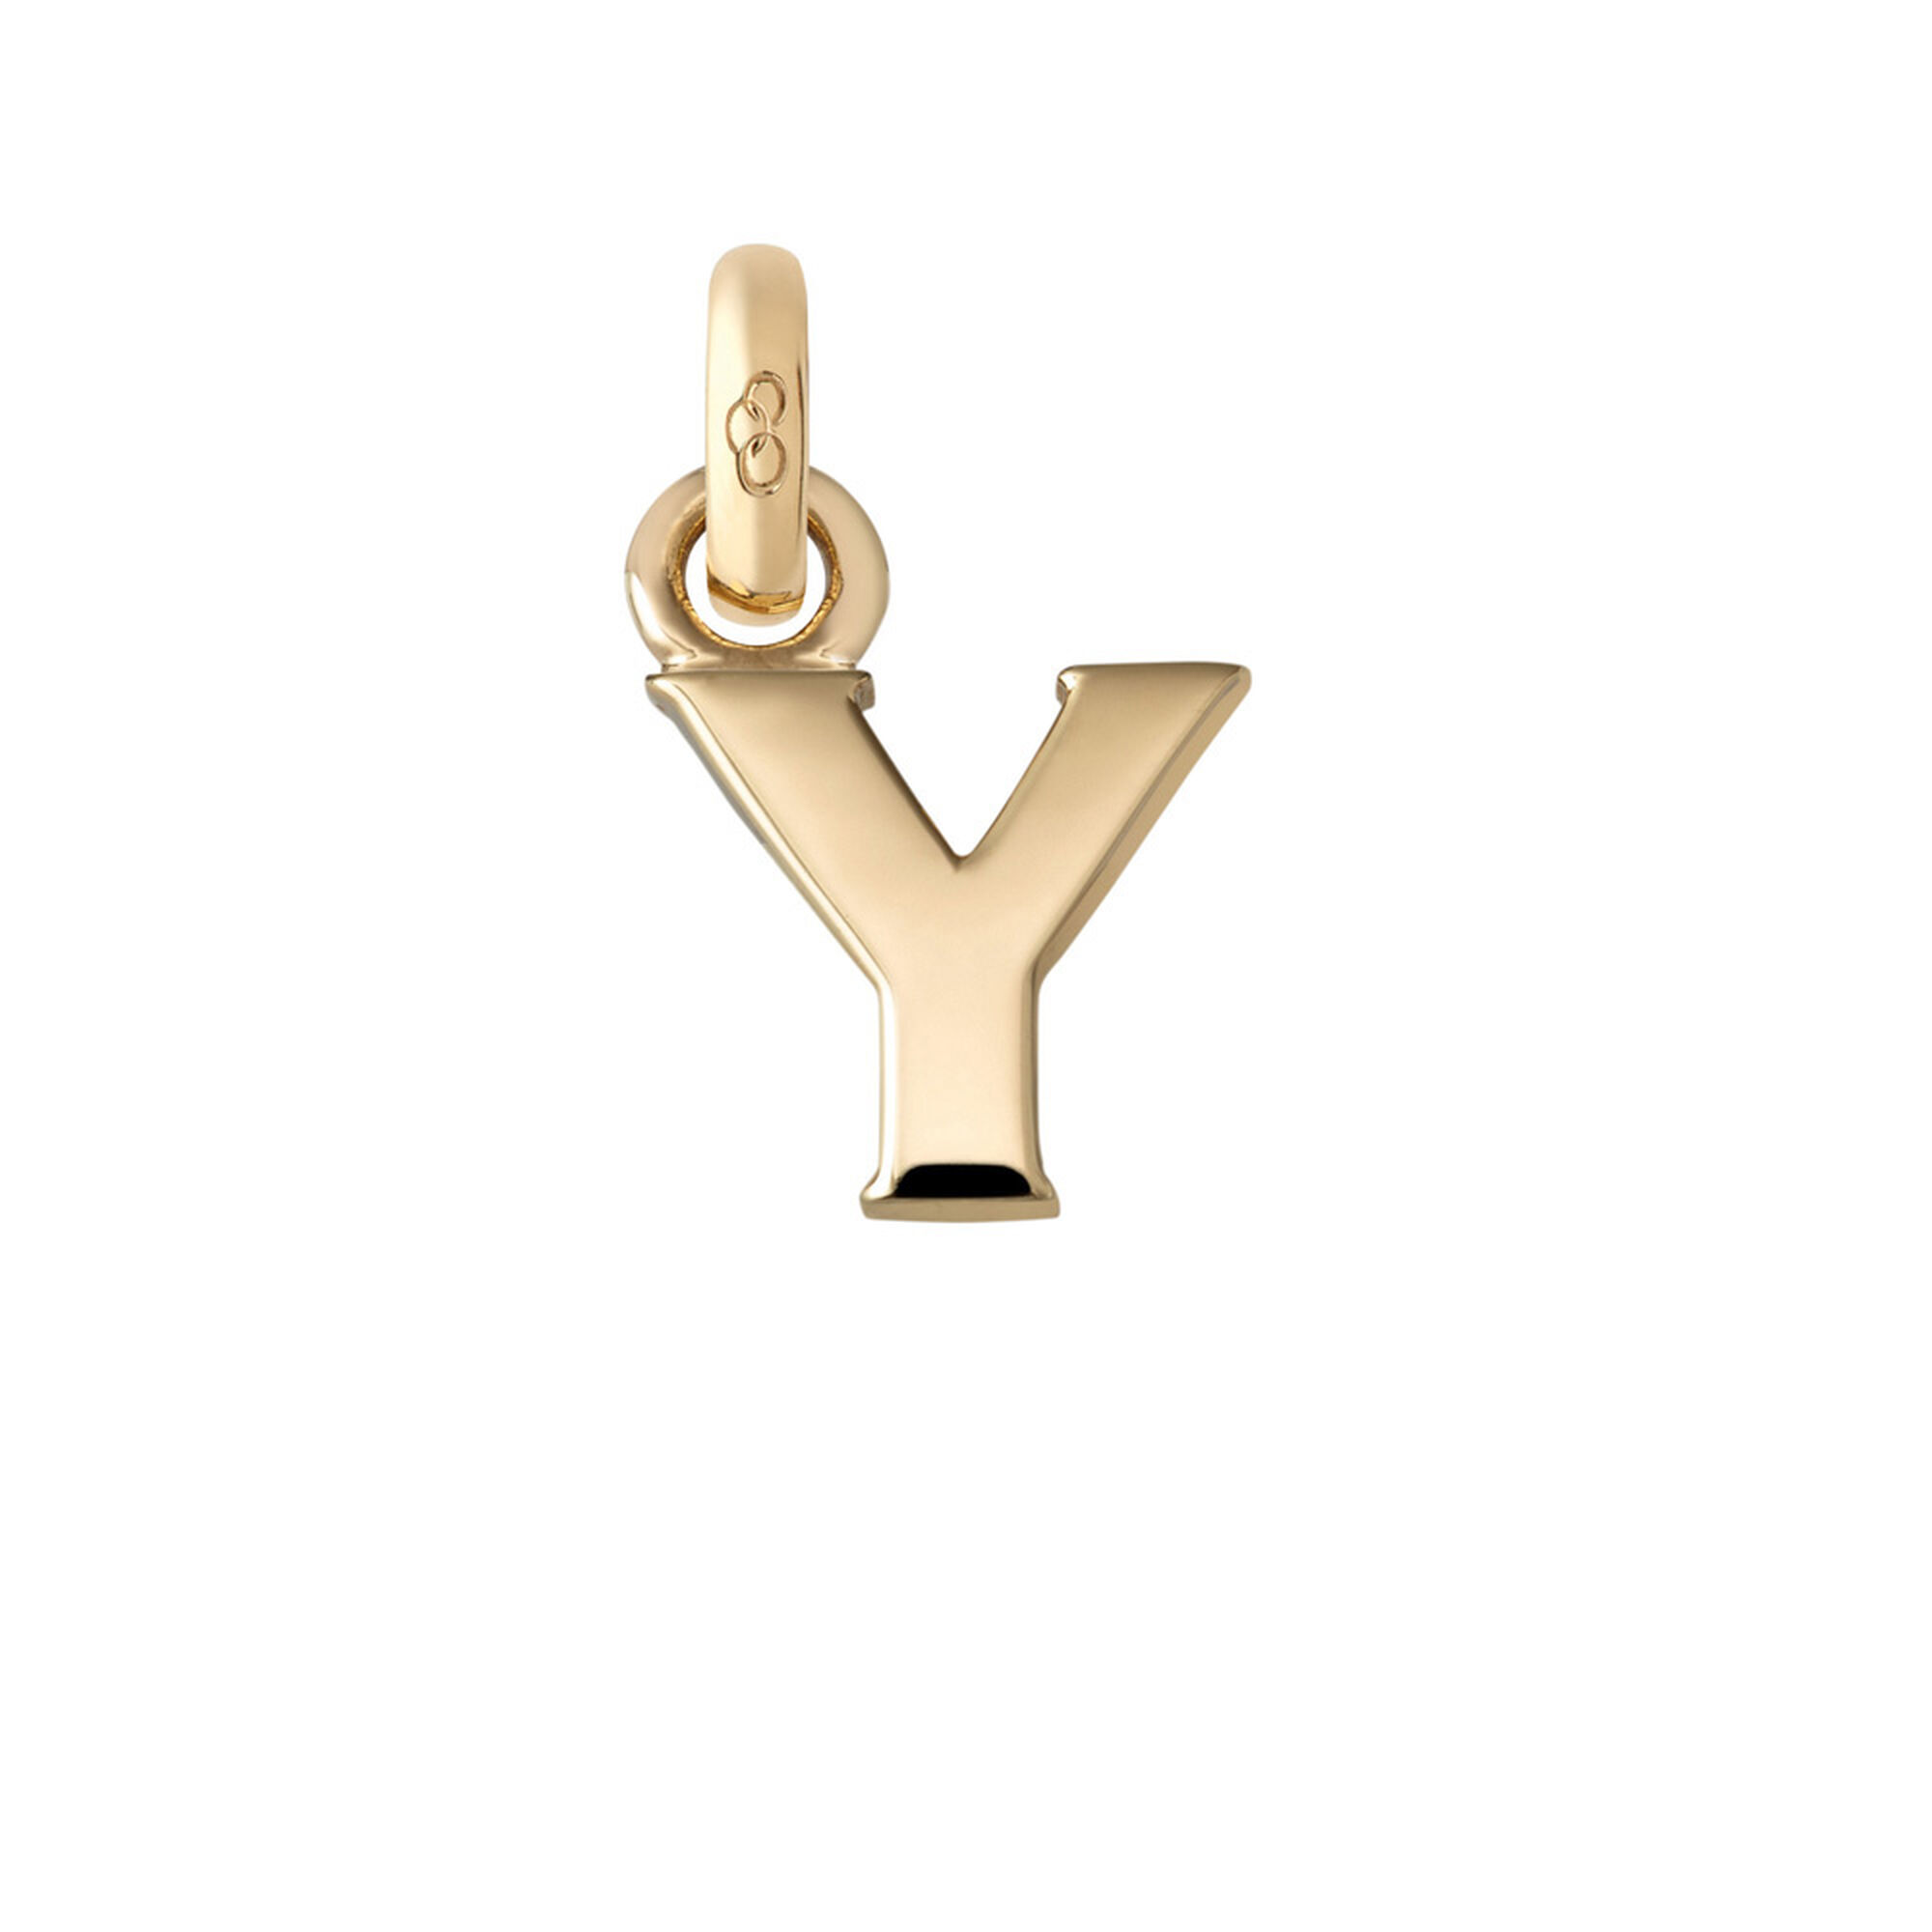 s in au eng vuitton accessories lv collections by necklace letter products front jewellery fashion louis me m alphabet women